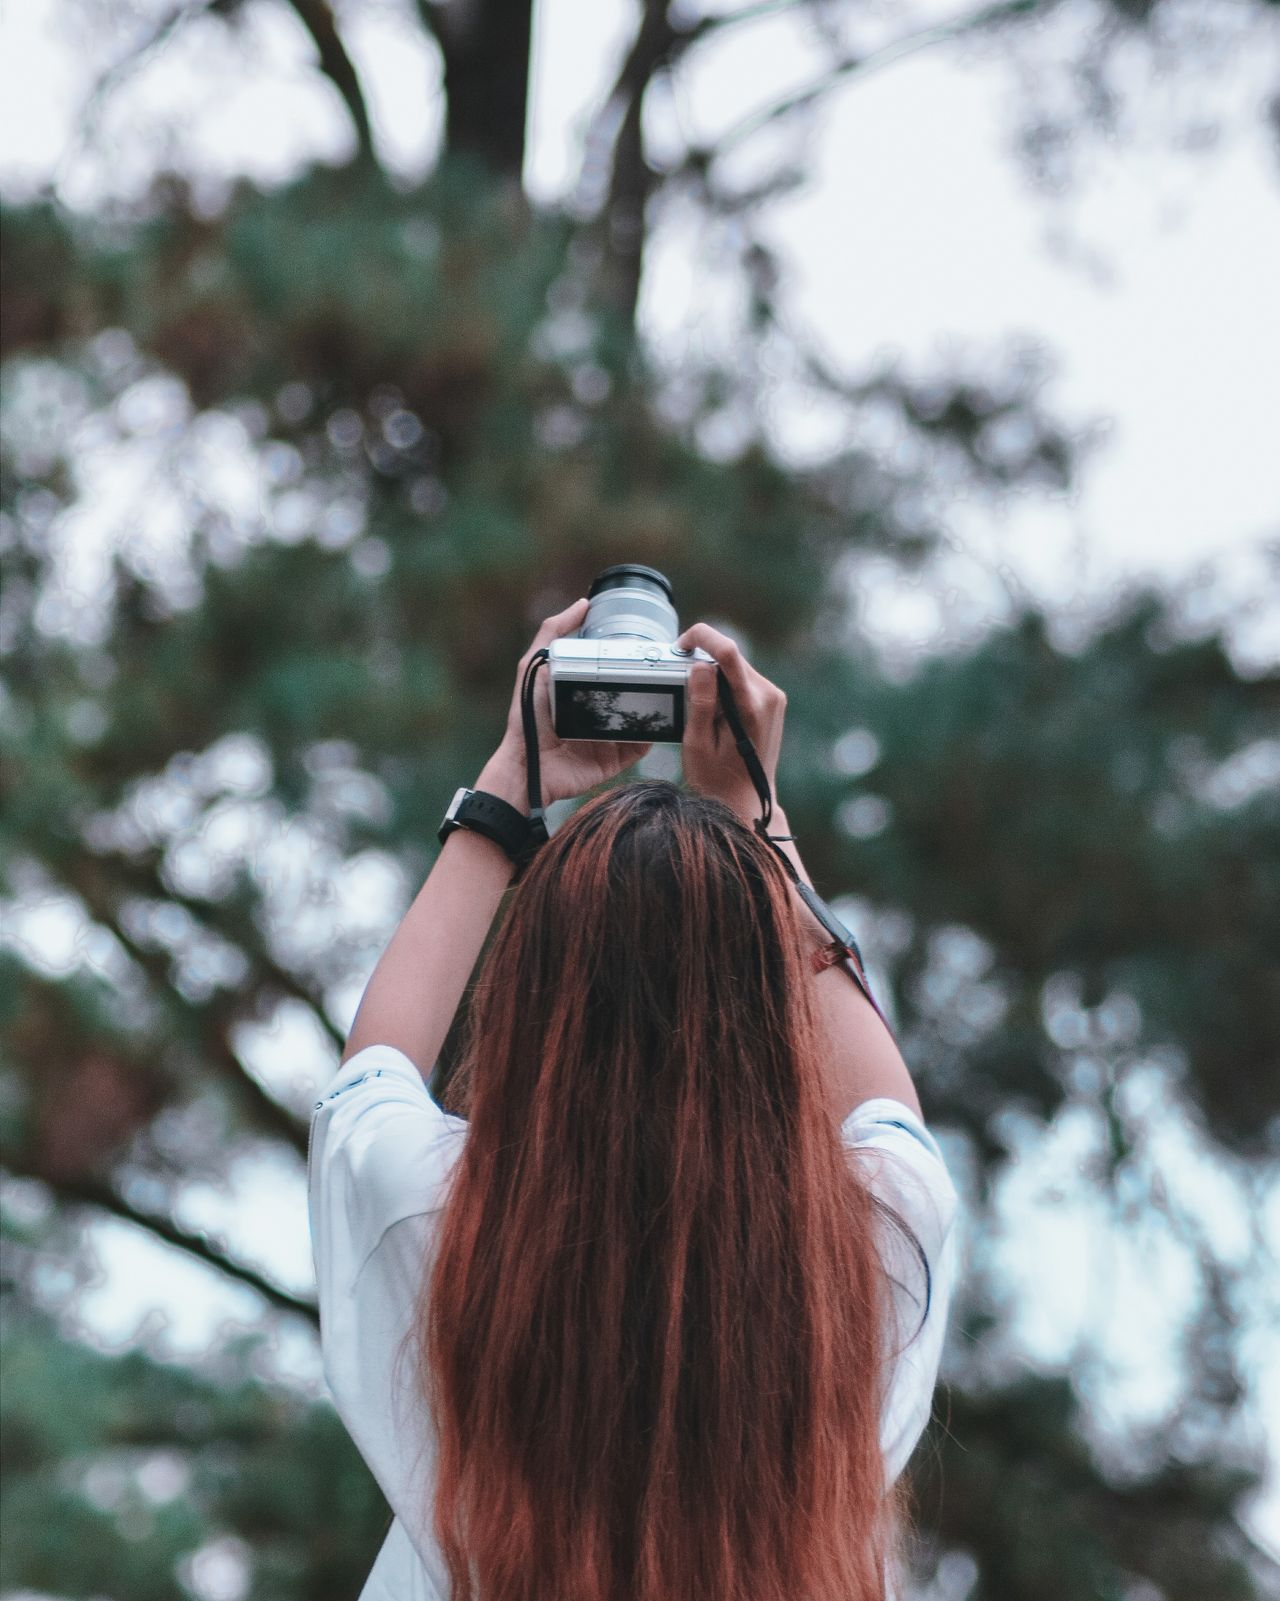 Rear view of woman photographing through camera